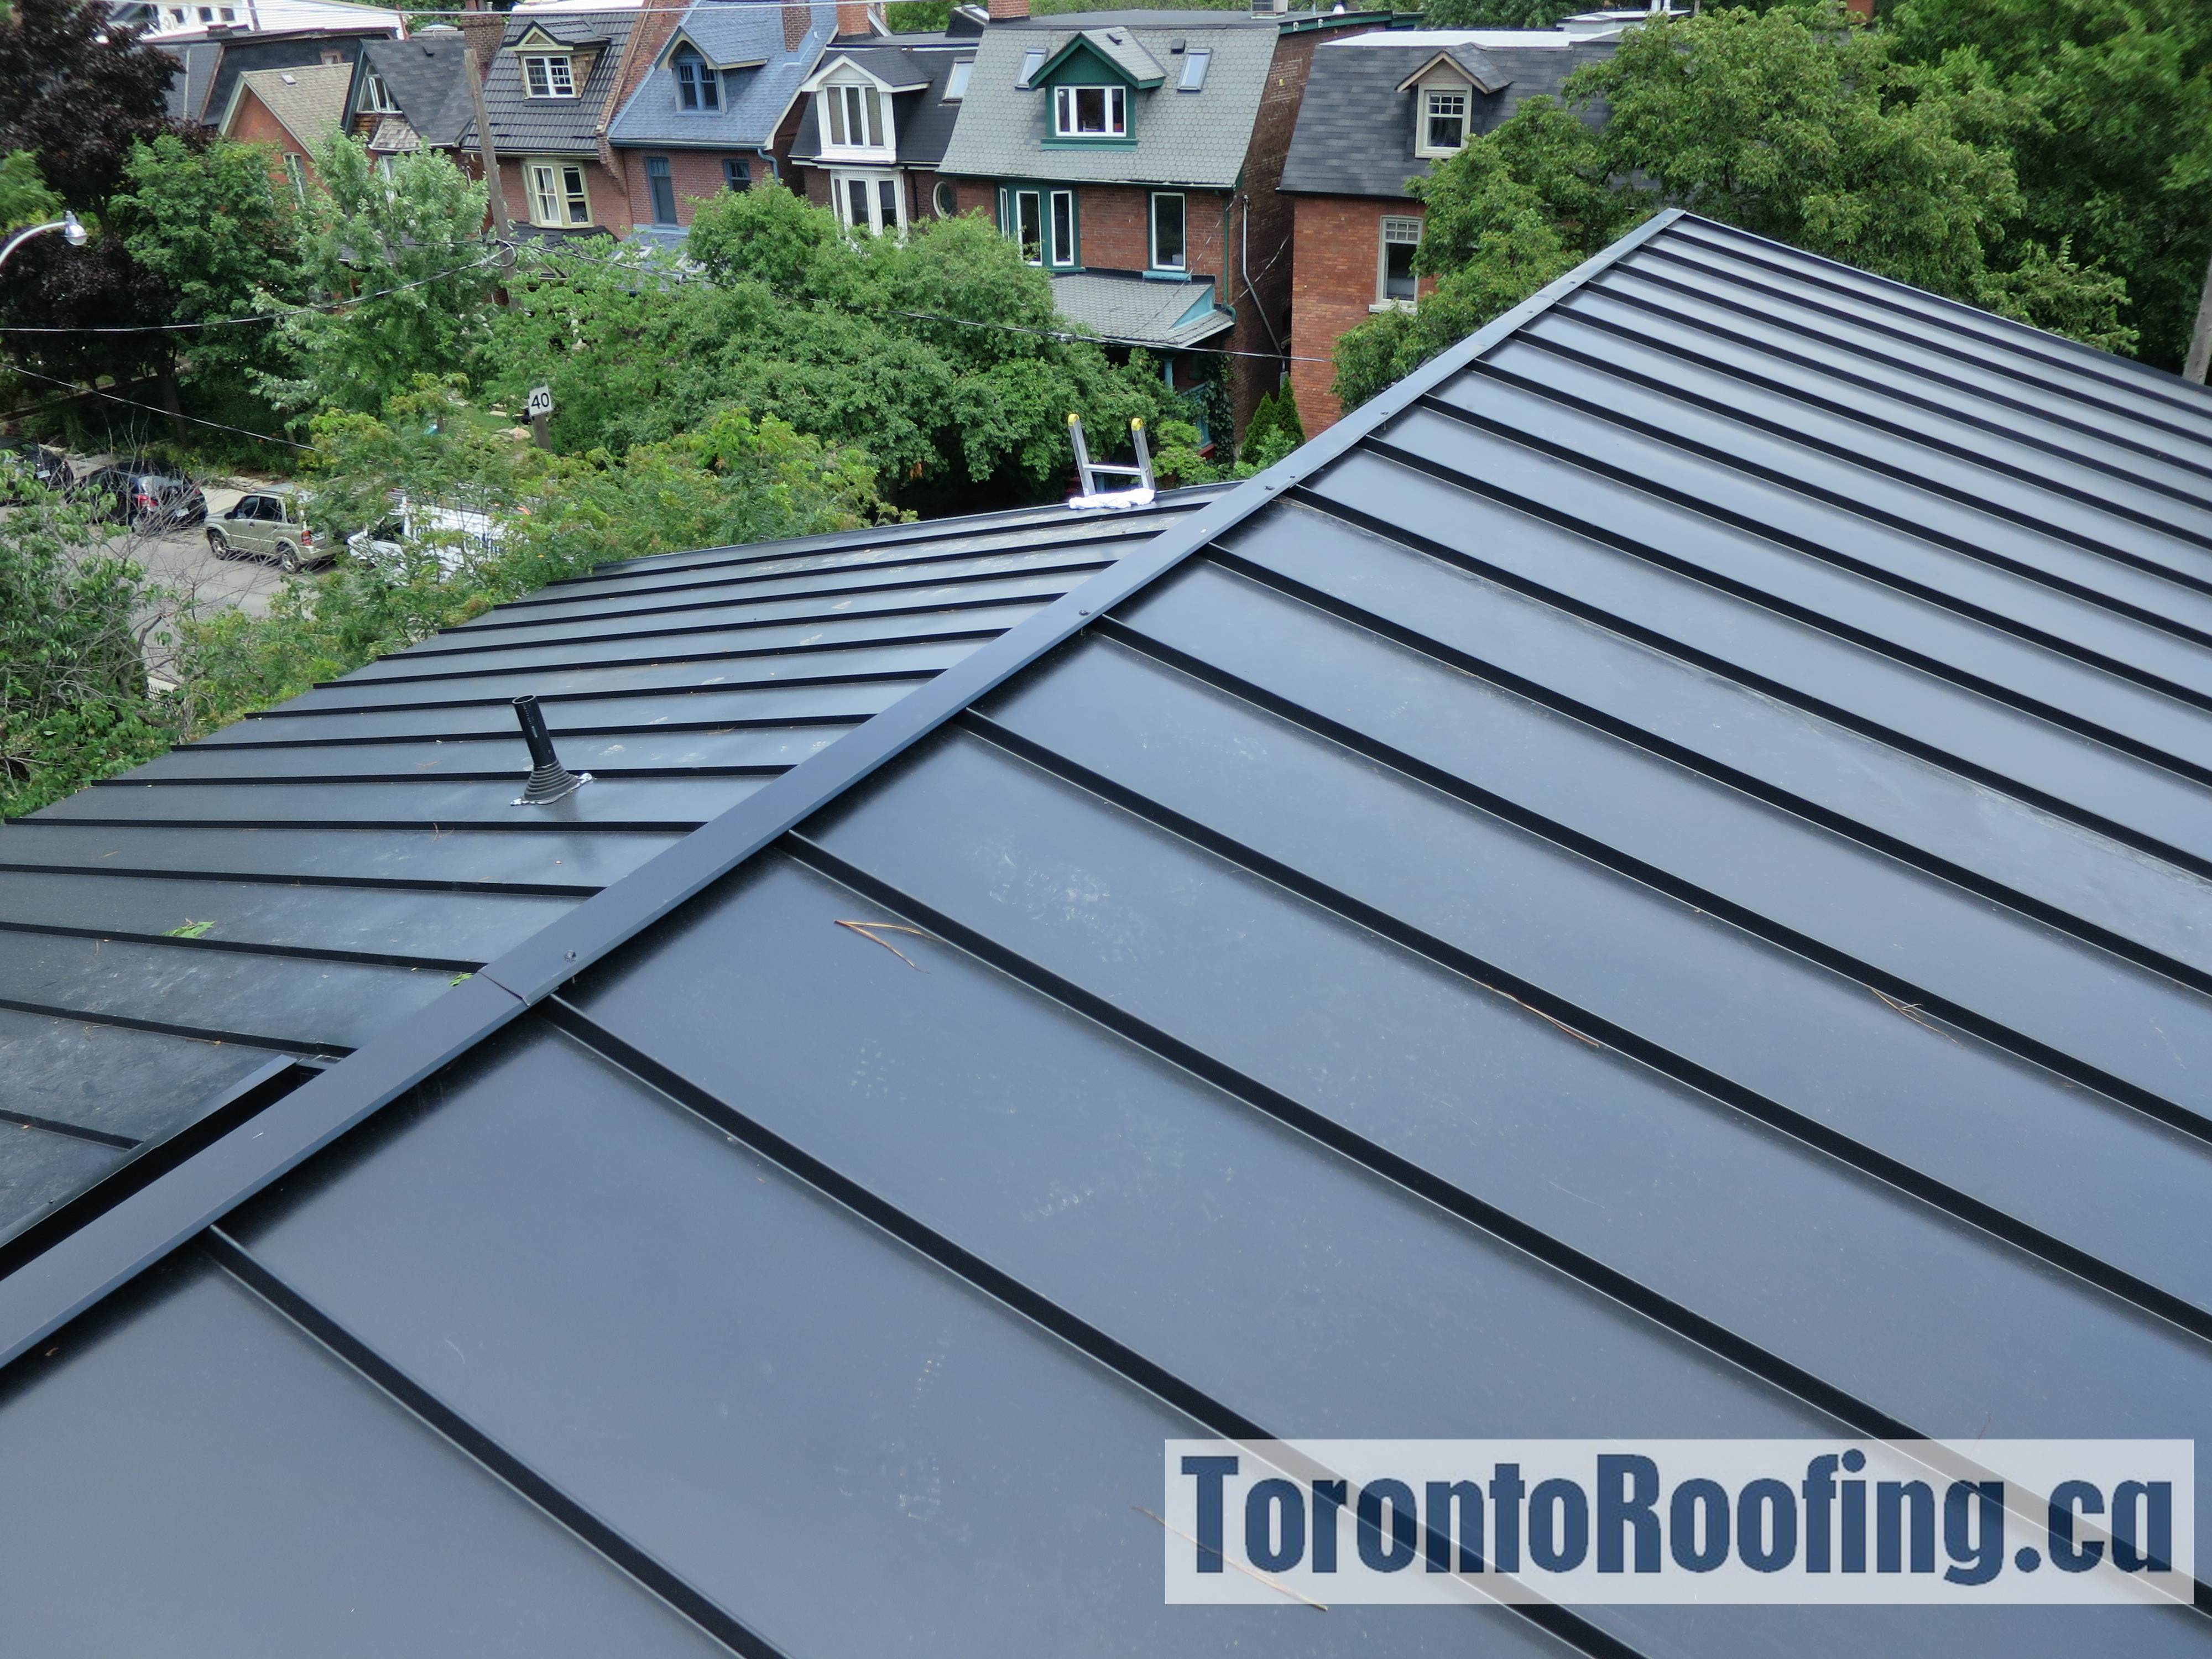 toronto-roofing-standing-seam-metal-roof-roofing-toronto-metal-roofing-roofing-contractor-7